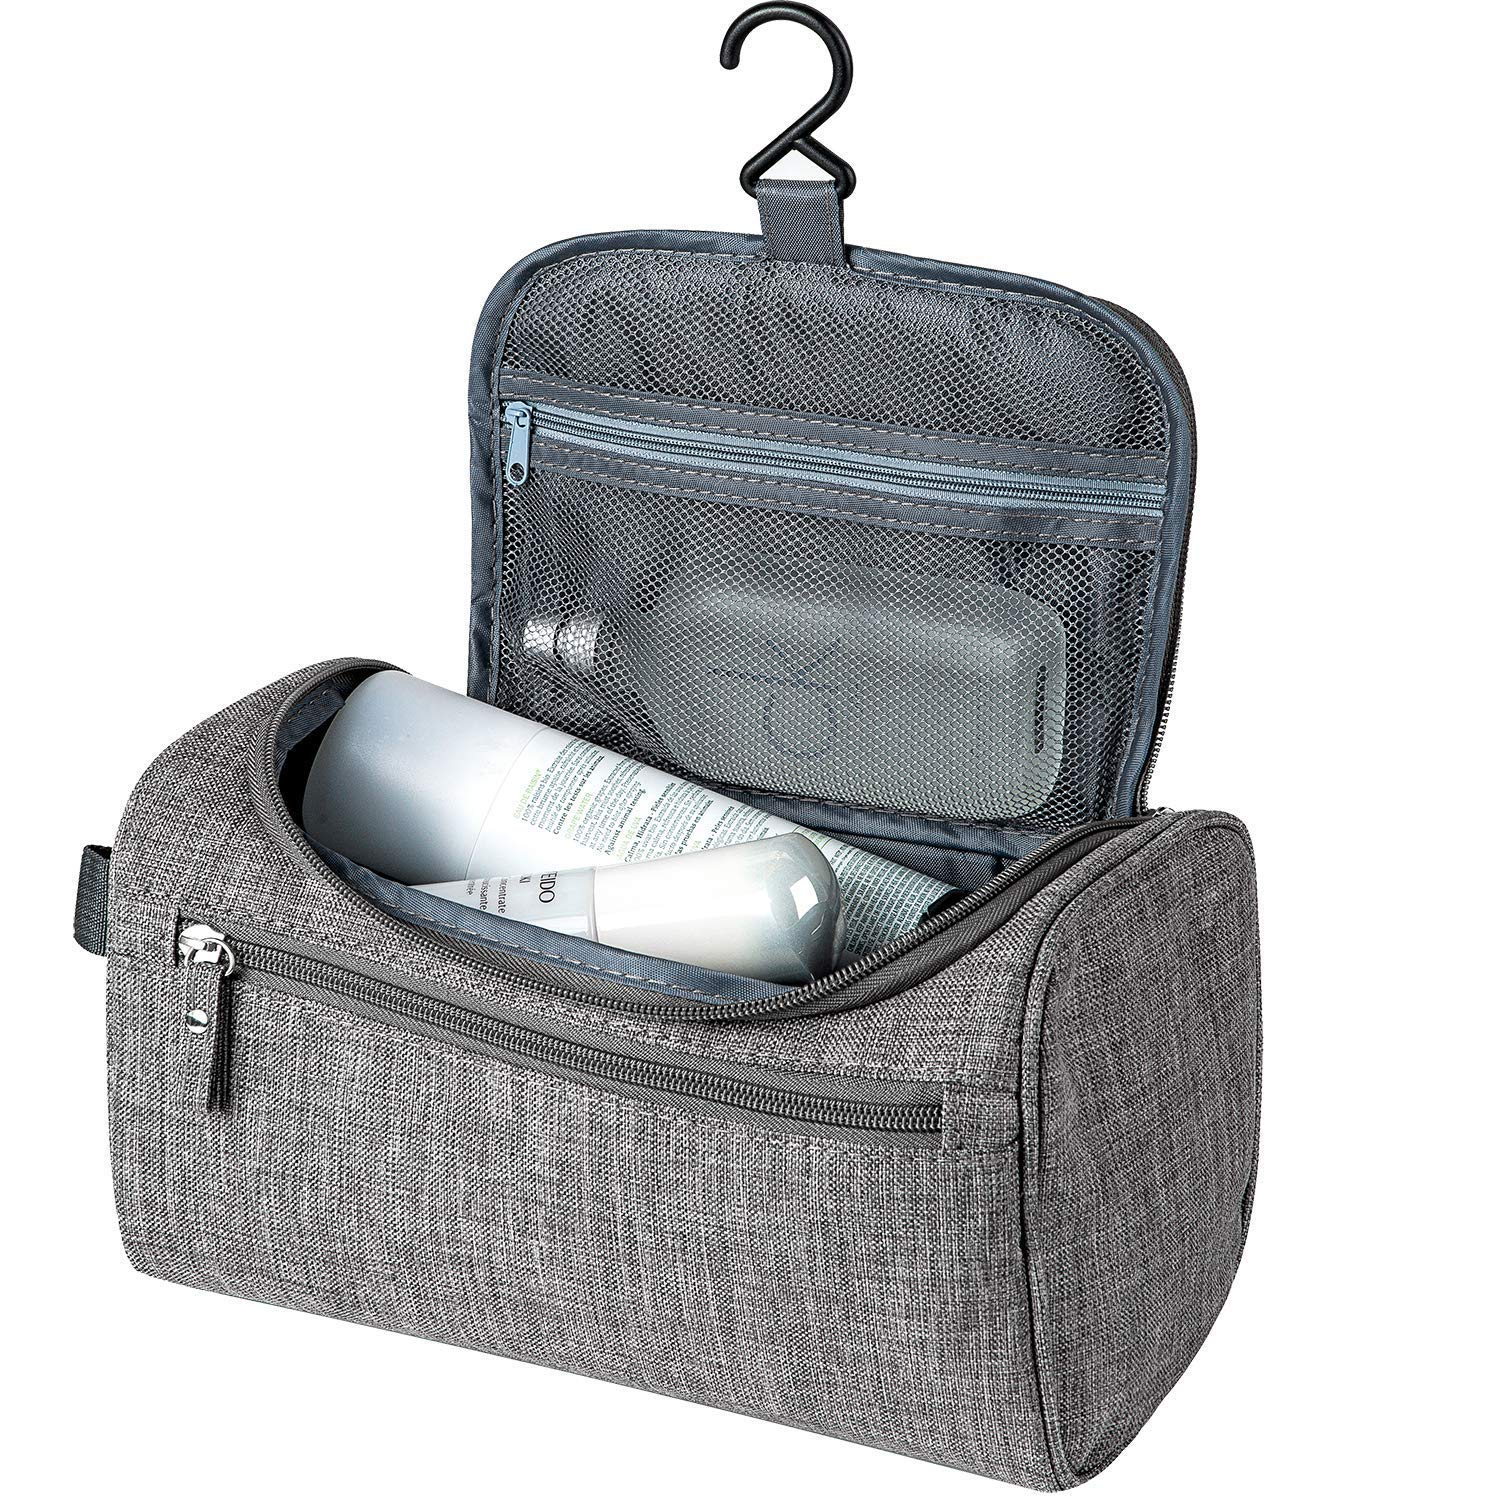 Travel Toiletry Bag for Men Women, Hanging Dopp Kit Waterproof Shaving Bag, Toiletry Organizer Wash Bag for Bathroom Shower, Makeup Cosmetic Bags for Toiletries Trip Accessories, TSA Approved, Grey